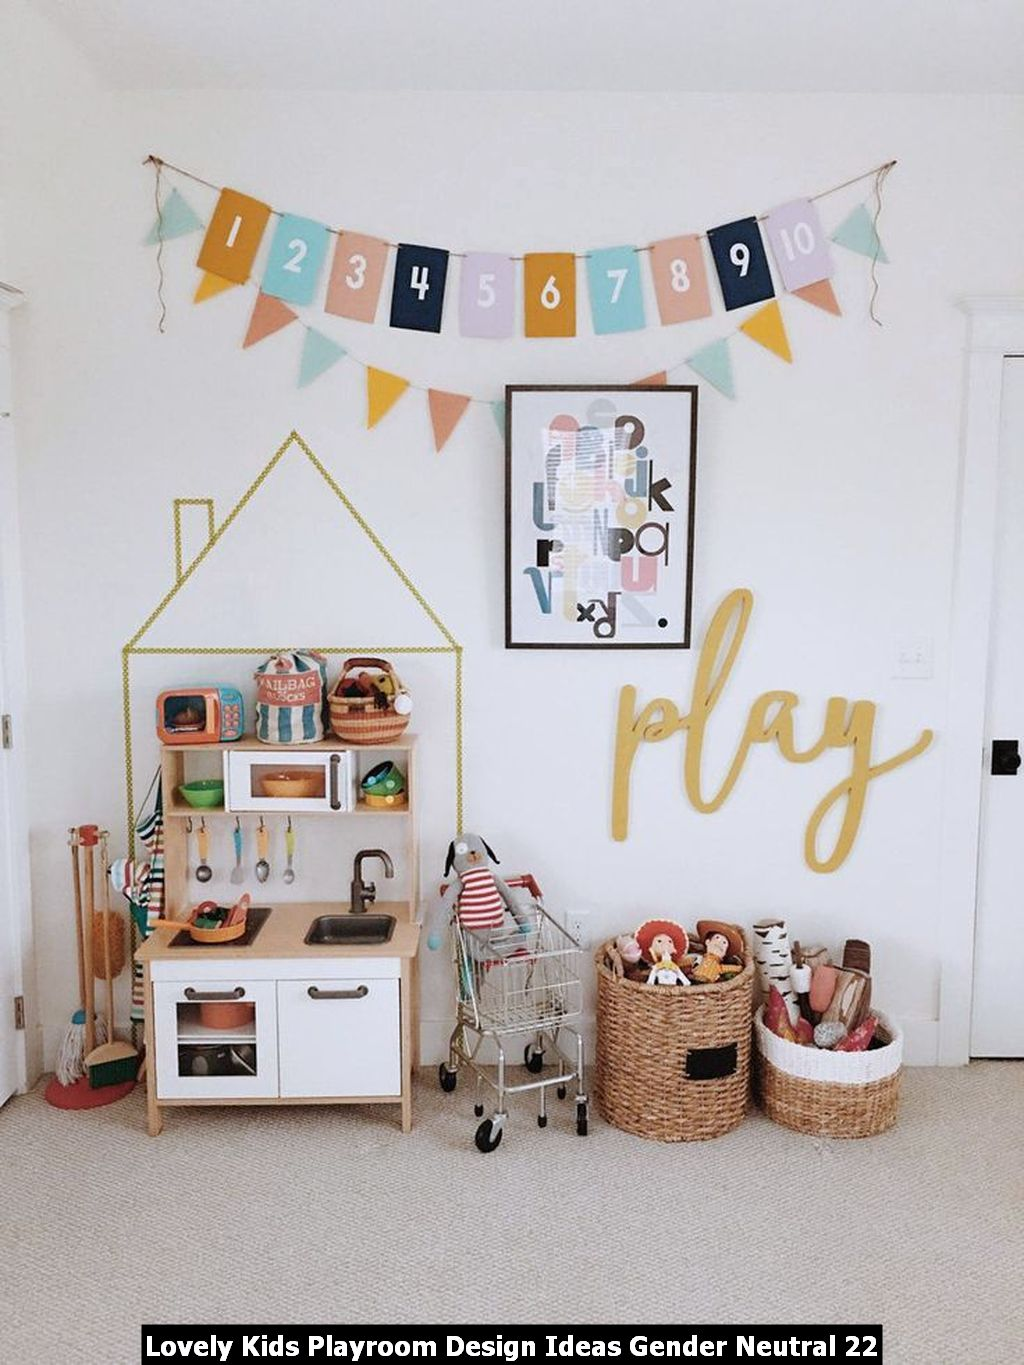 Lovely Kids Playroom Design Ideas Gender Neutral 22